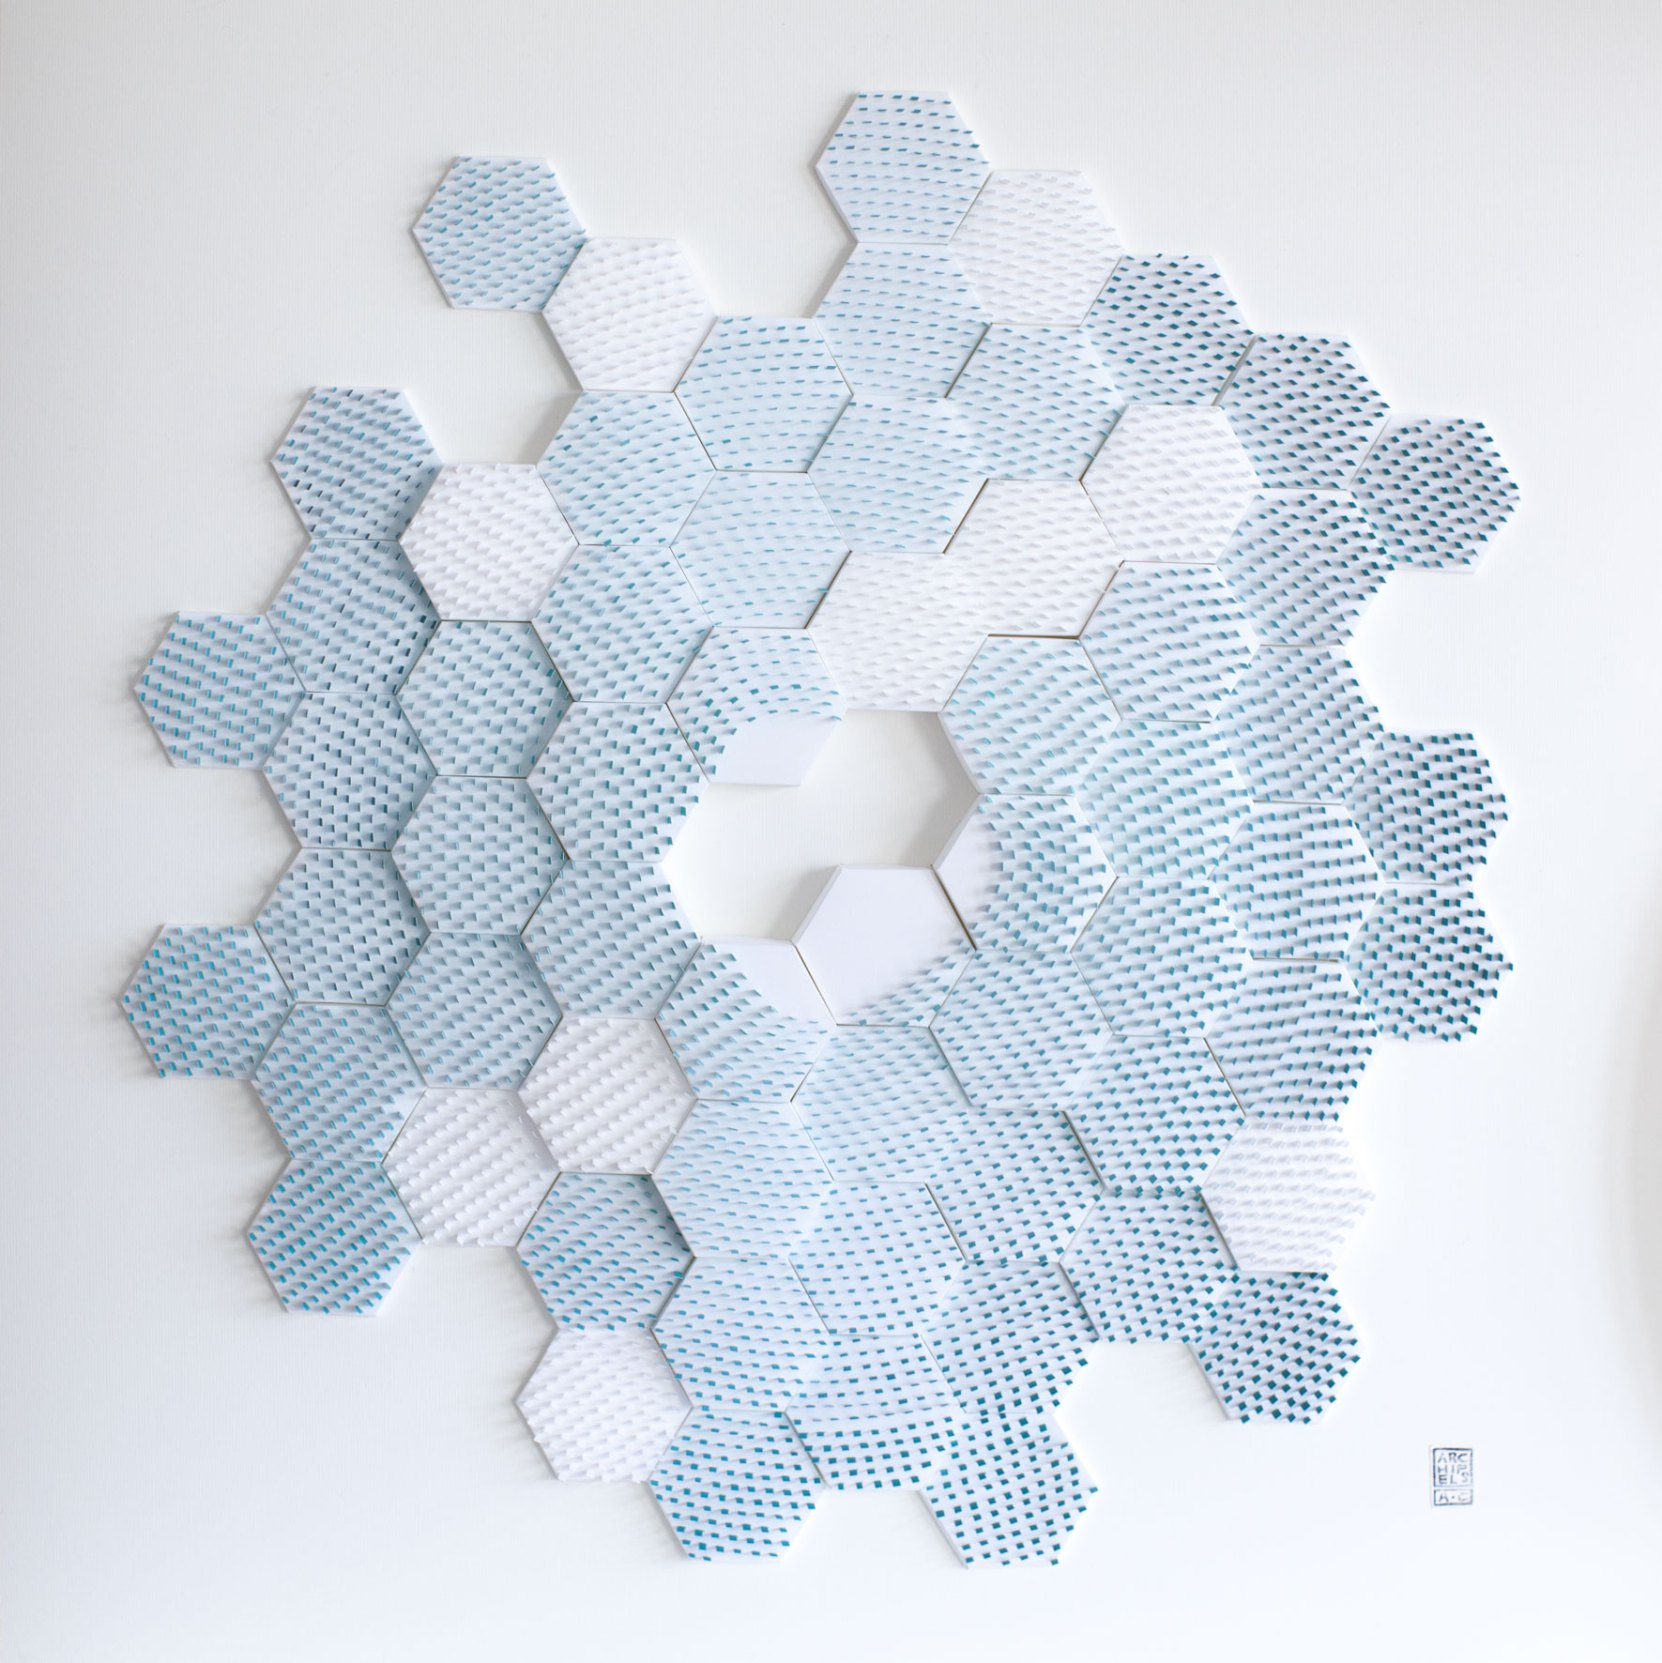 Minimal Kinetic Landscapes in Paper by Agnès Cappadoro